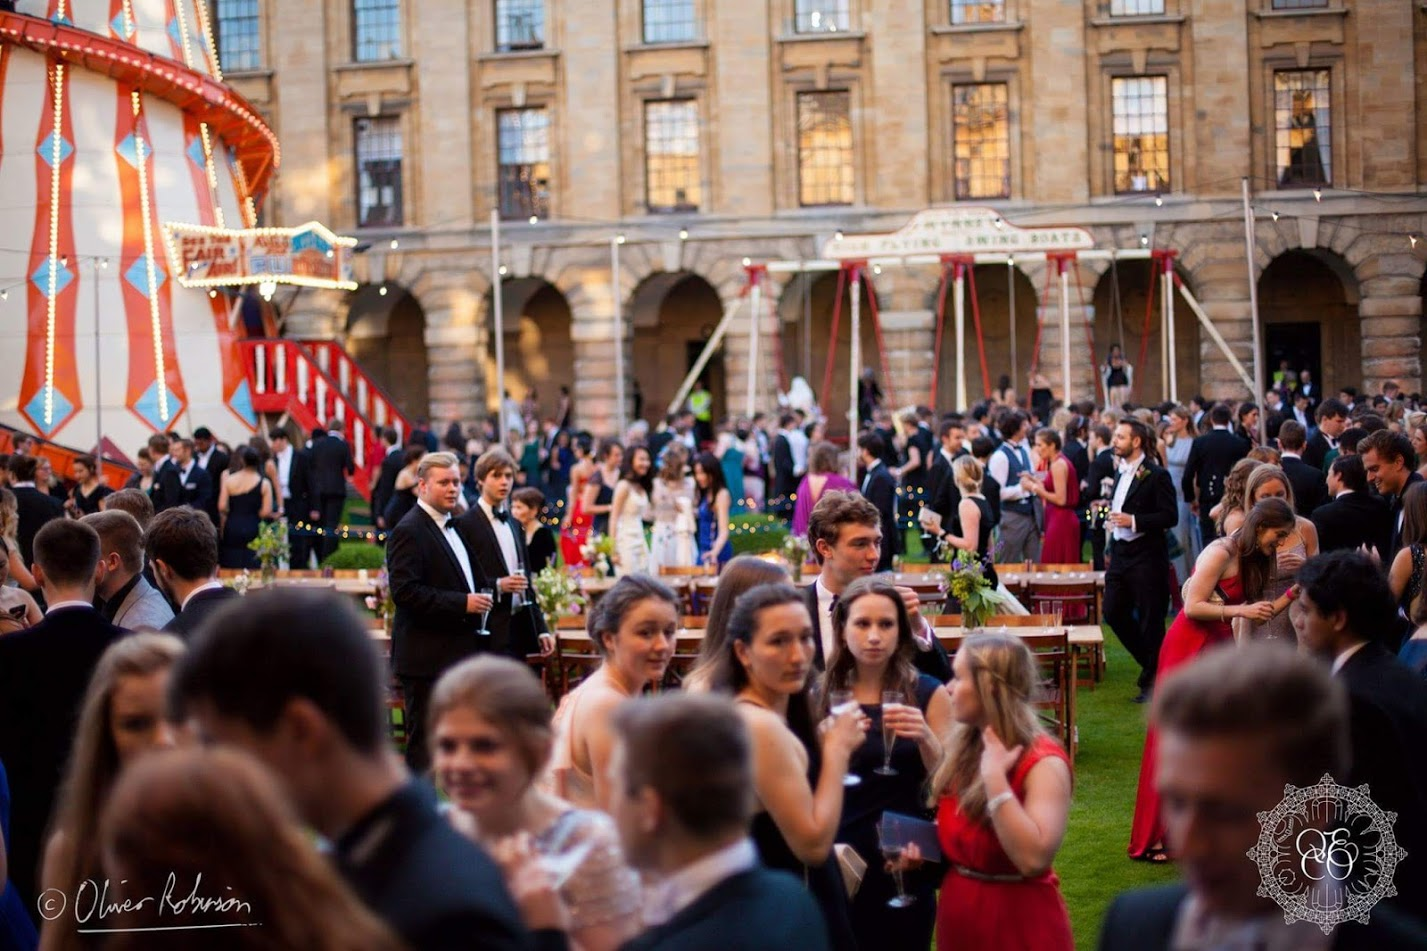 image via The Queen's College Commemoration Ball 2016